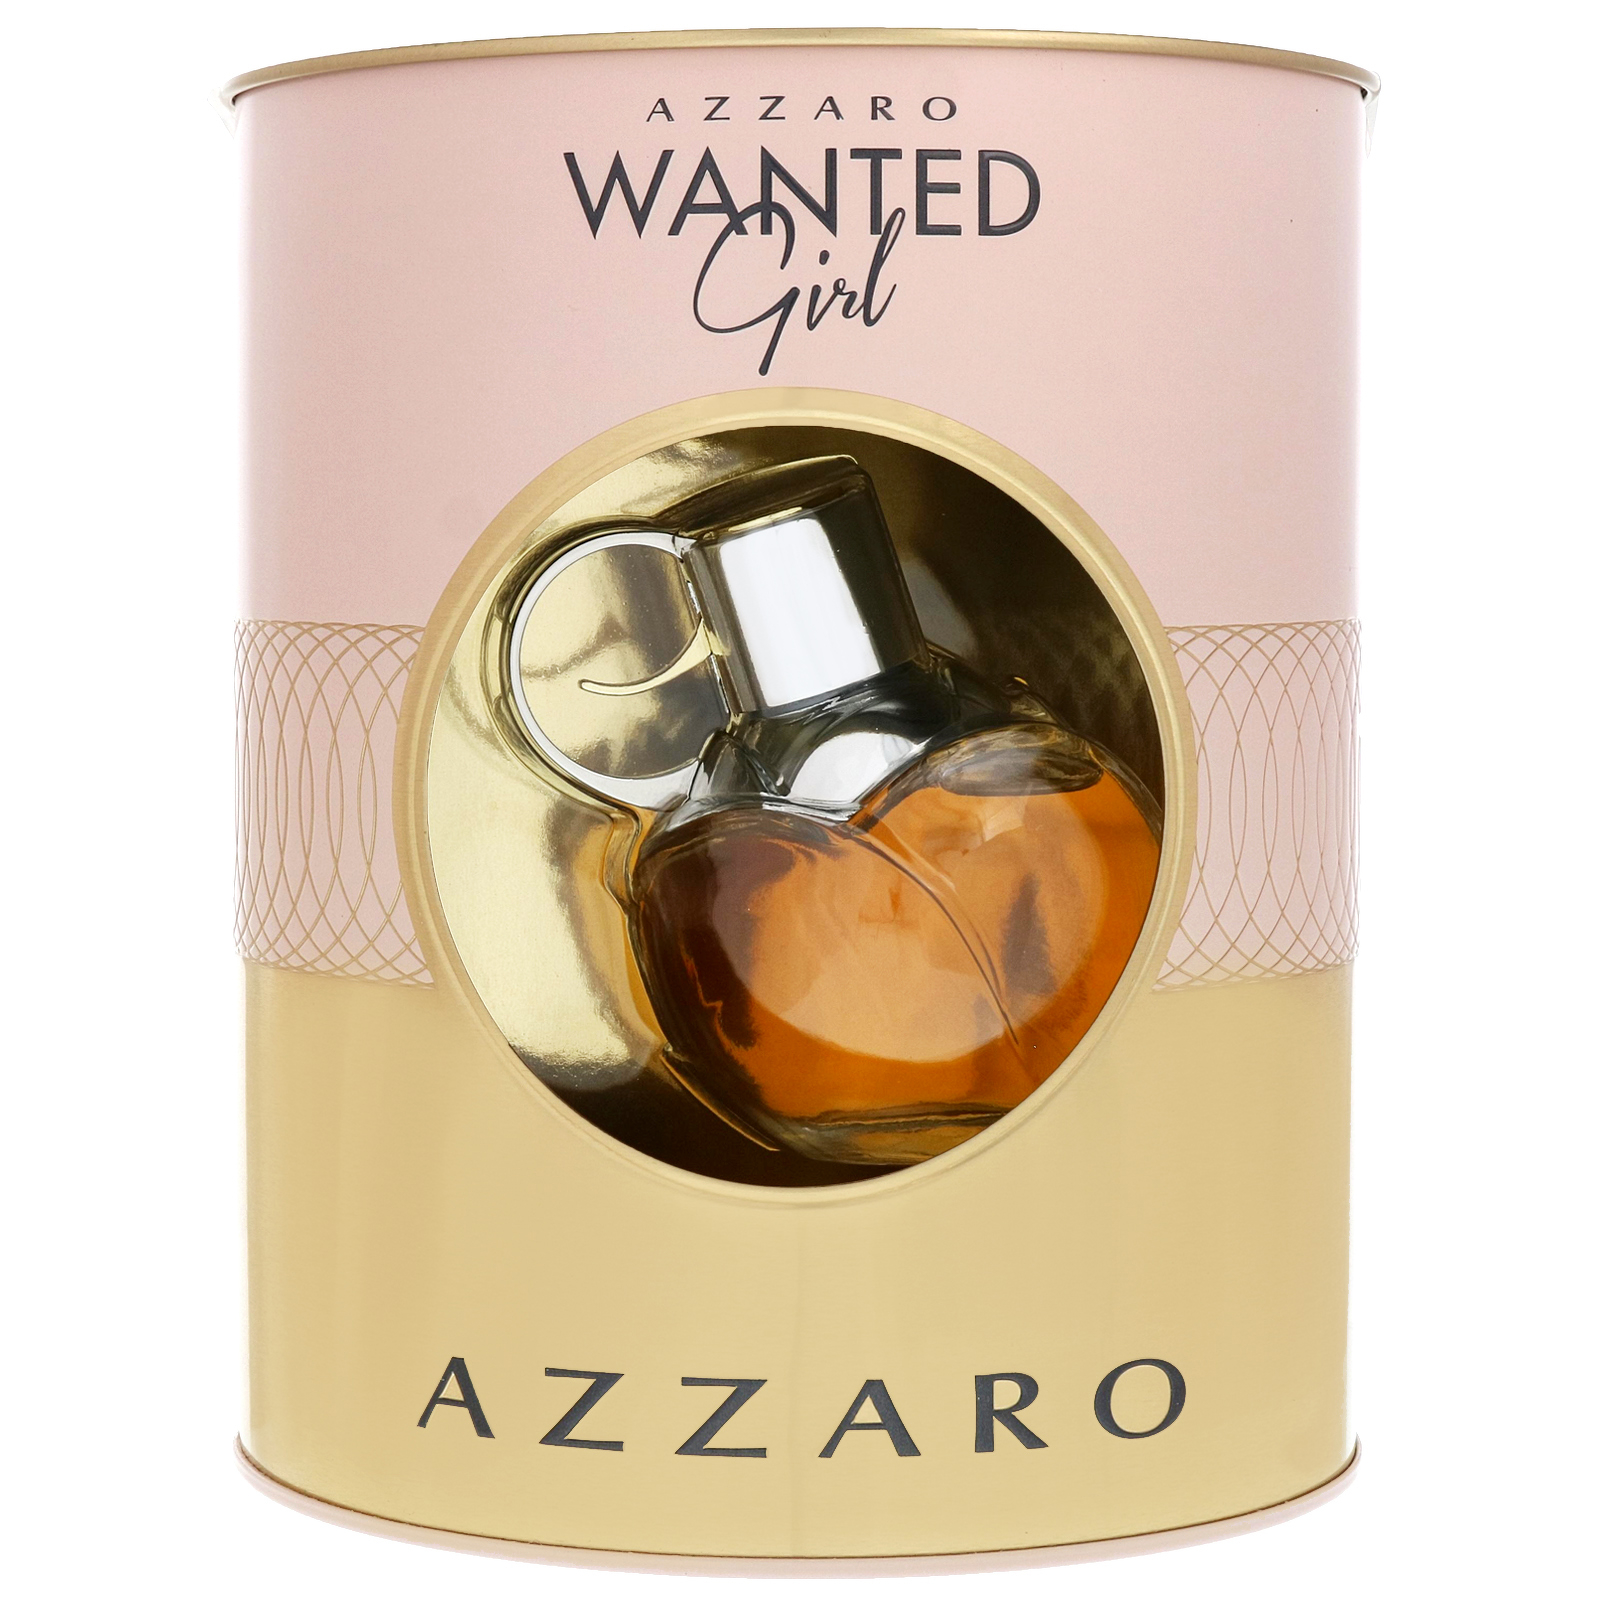 Azzaro Wanted Girl Eau de Parfum Spray 80ml Gift Set